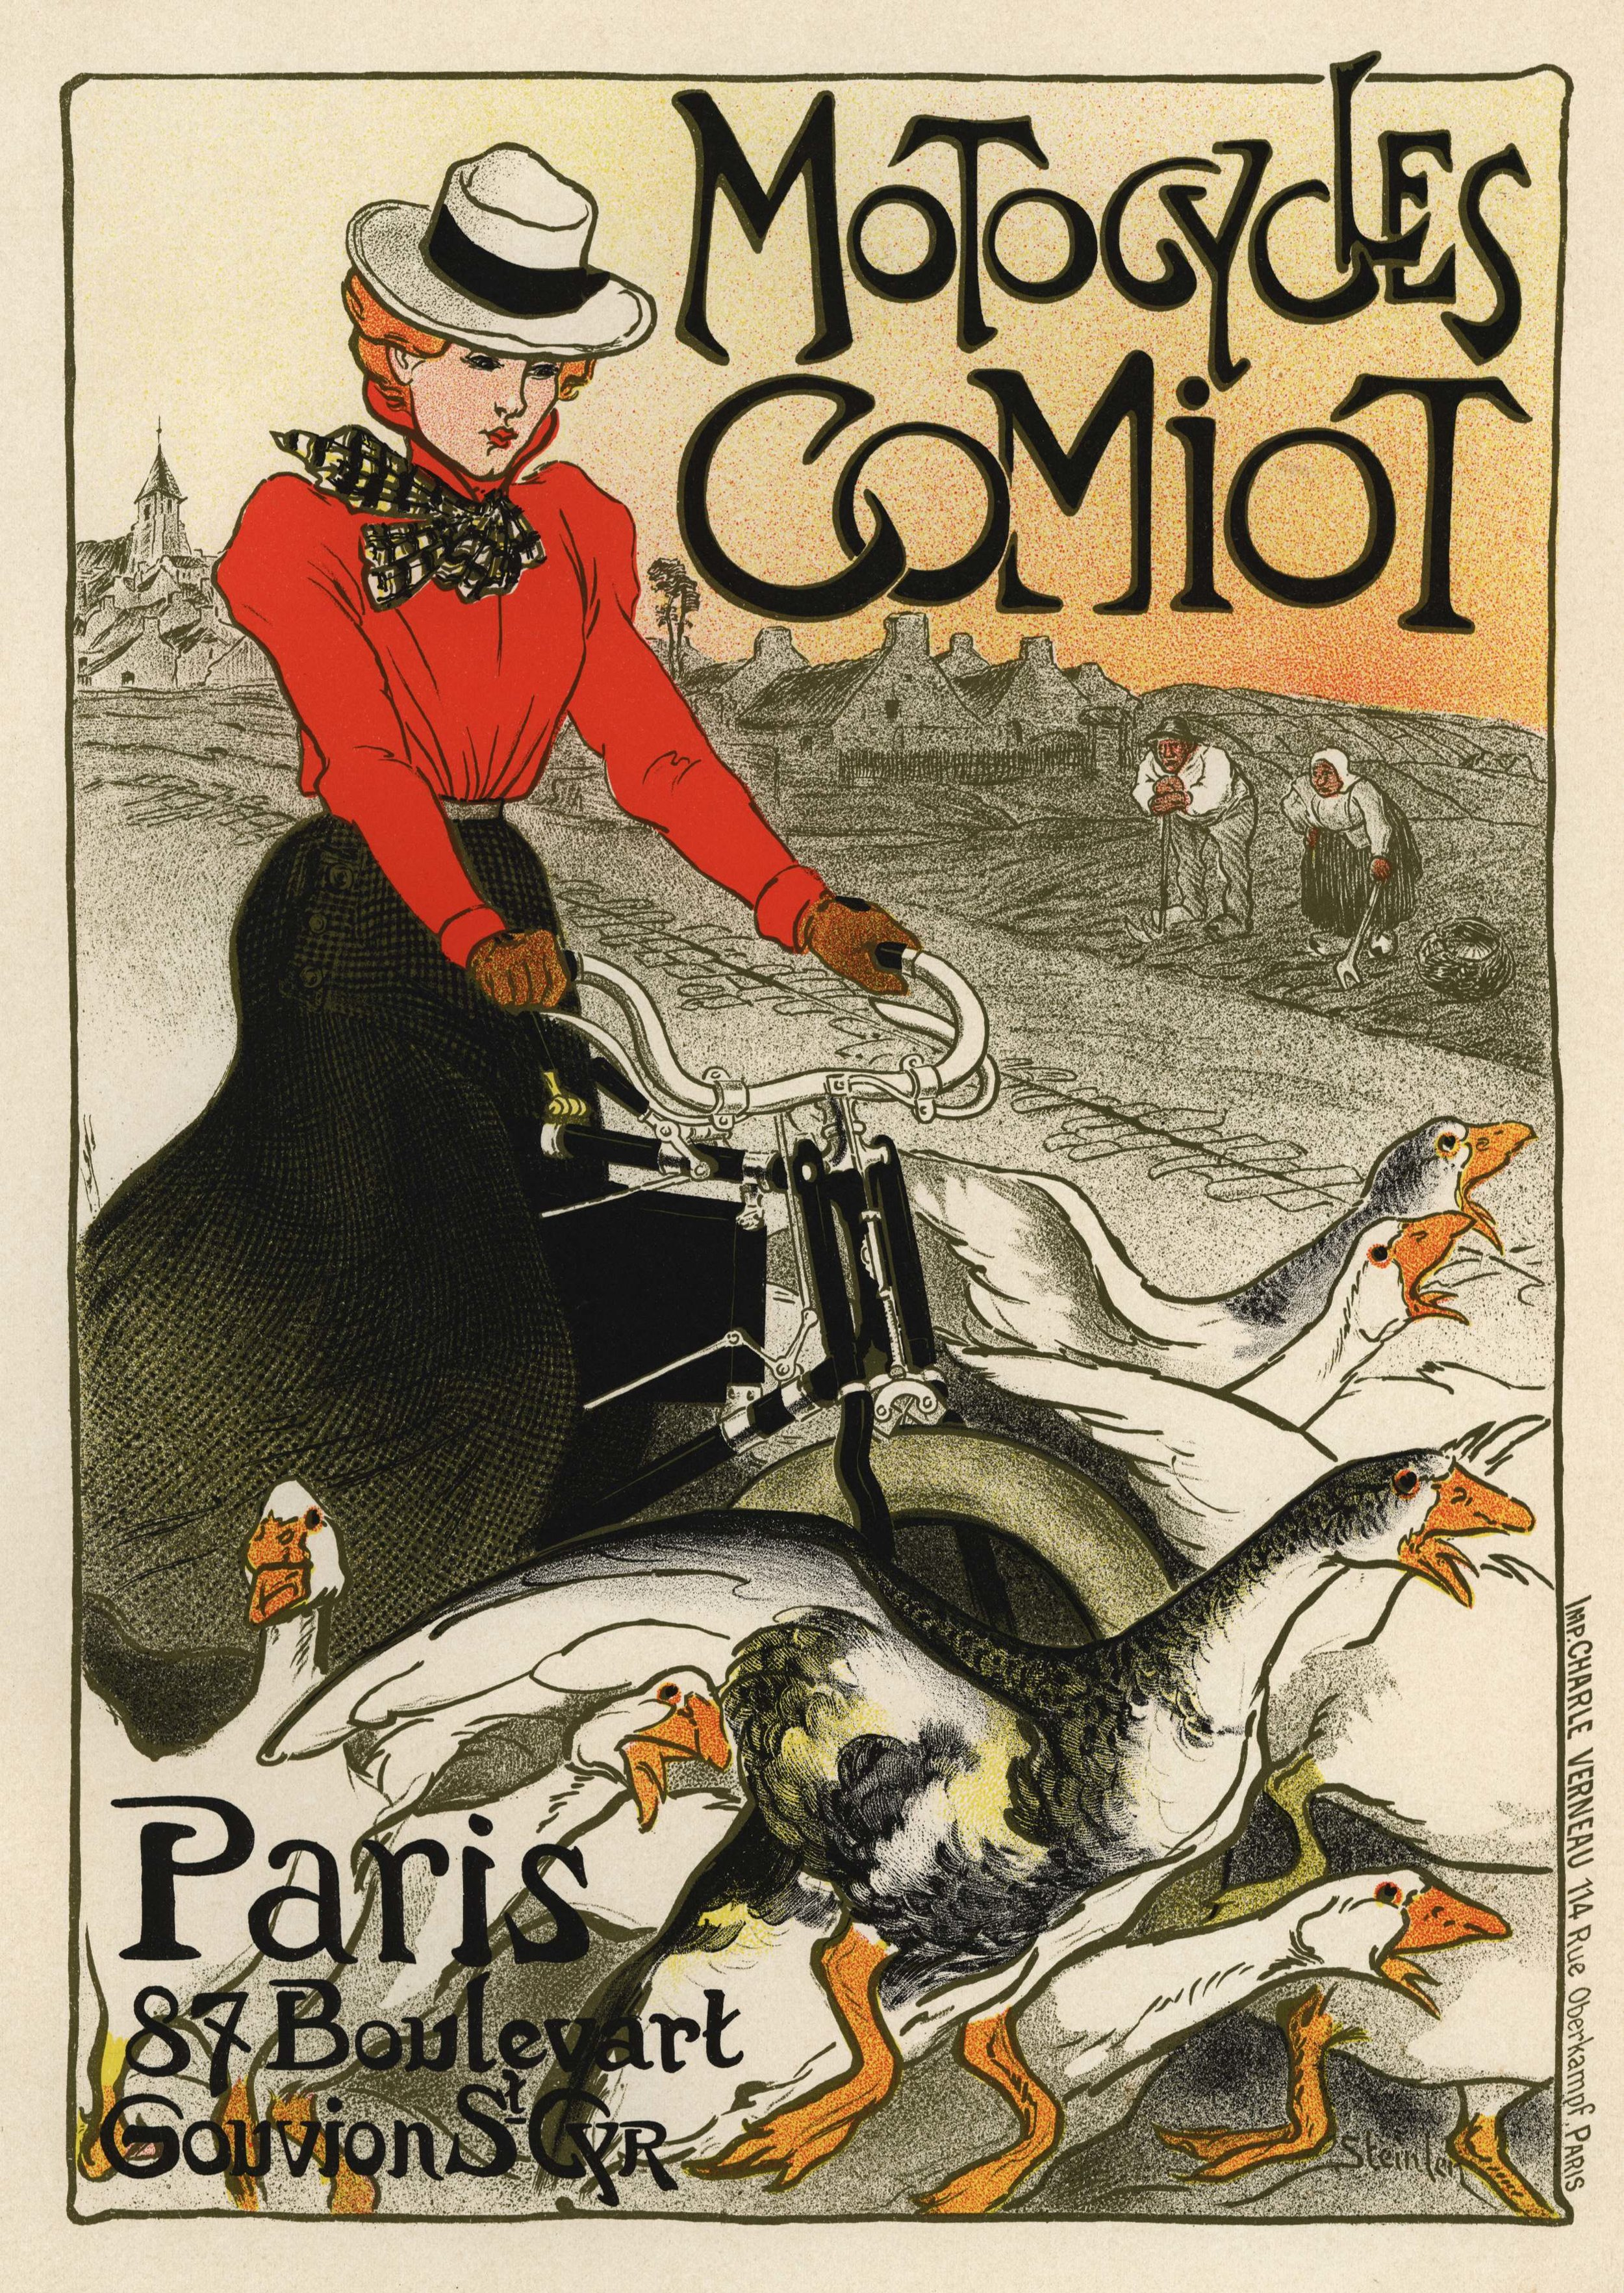 Motocycles Comiot  by Théophile Alexandre Steinlen, 1899